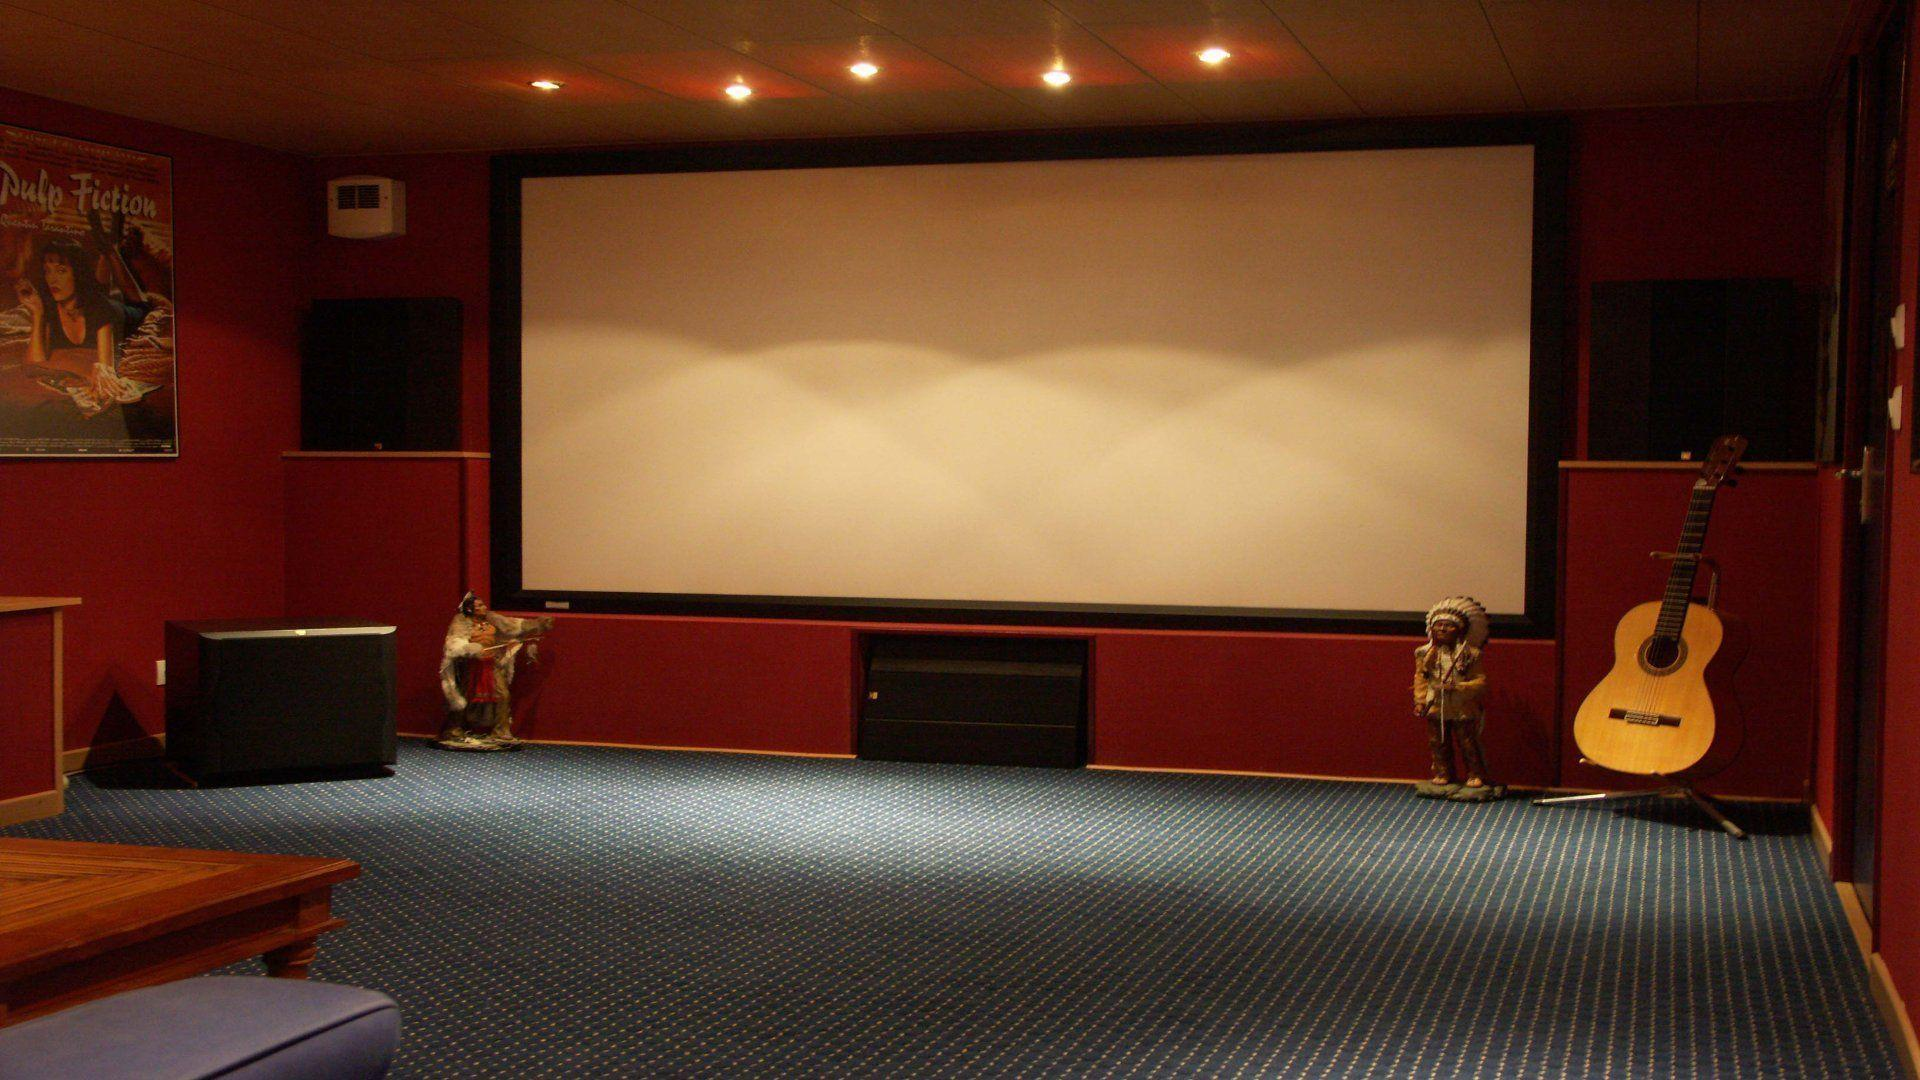 Home cinema wallpapers wallpaper cave - Home theater wallpaper ...